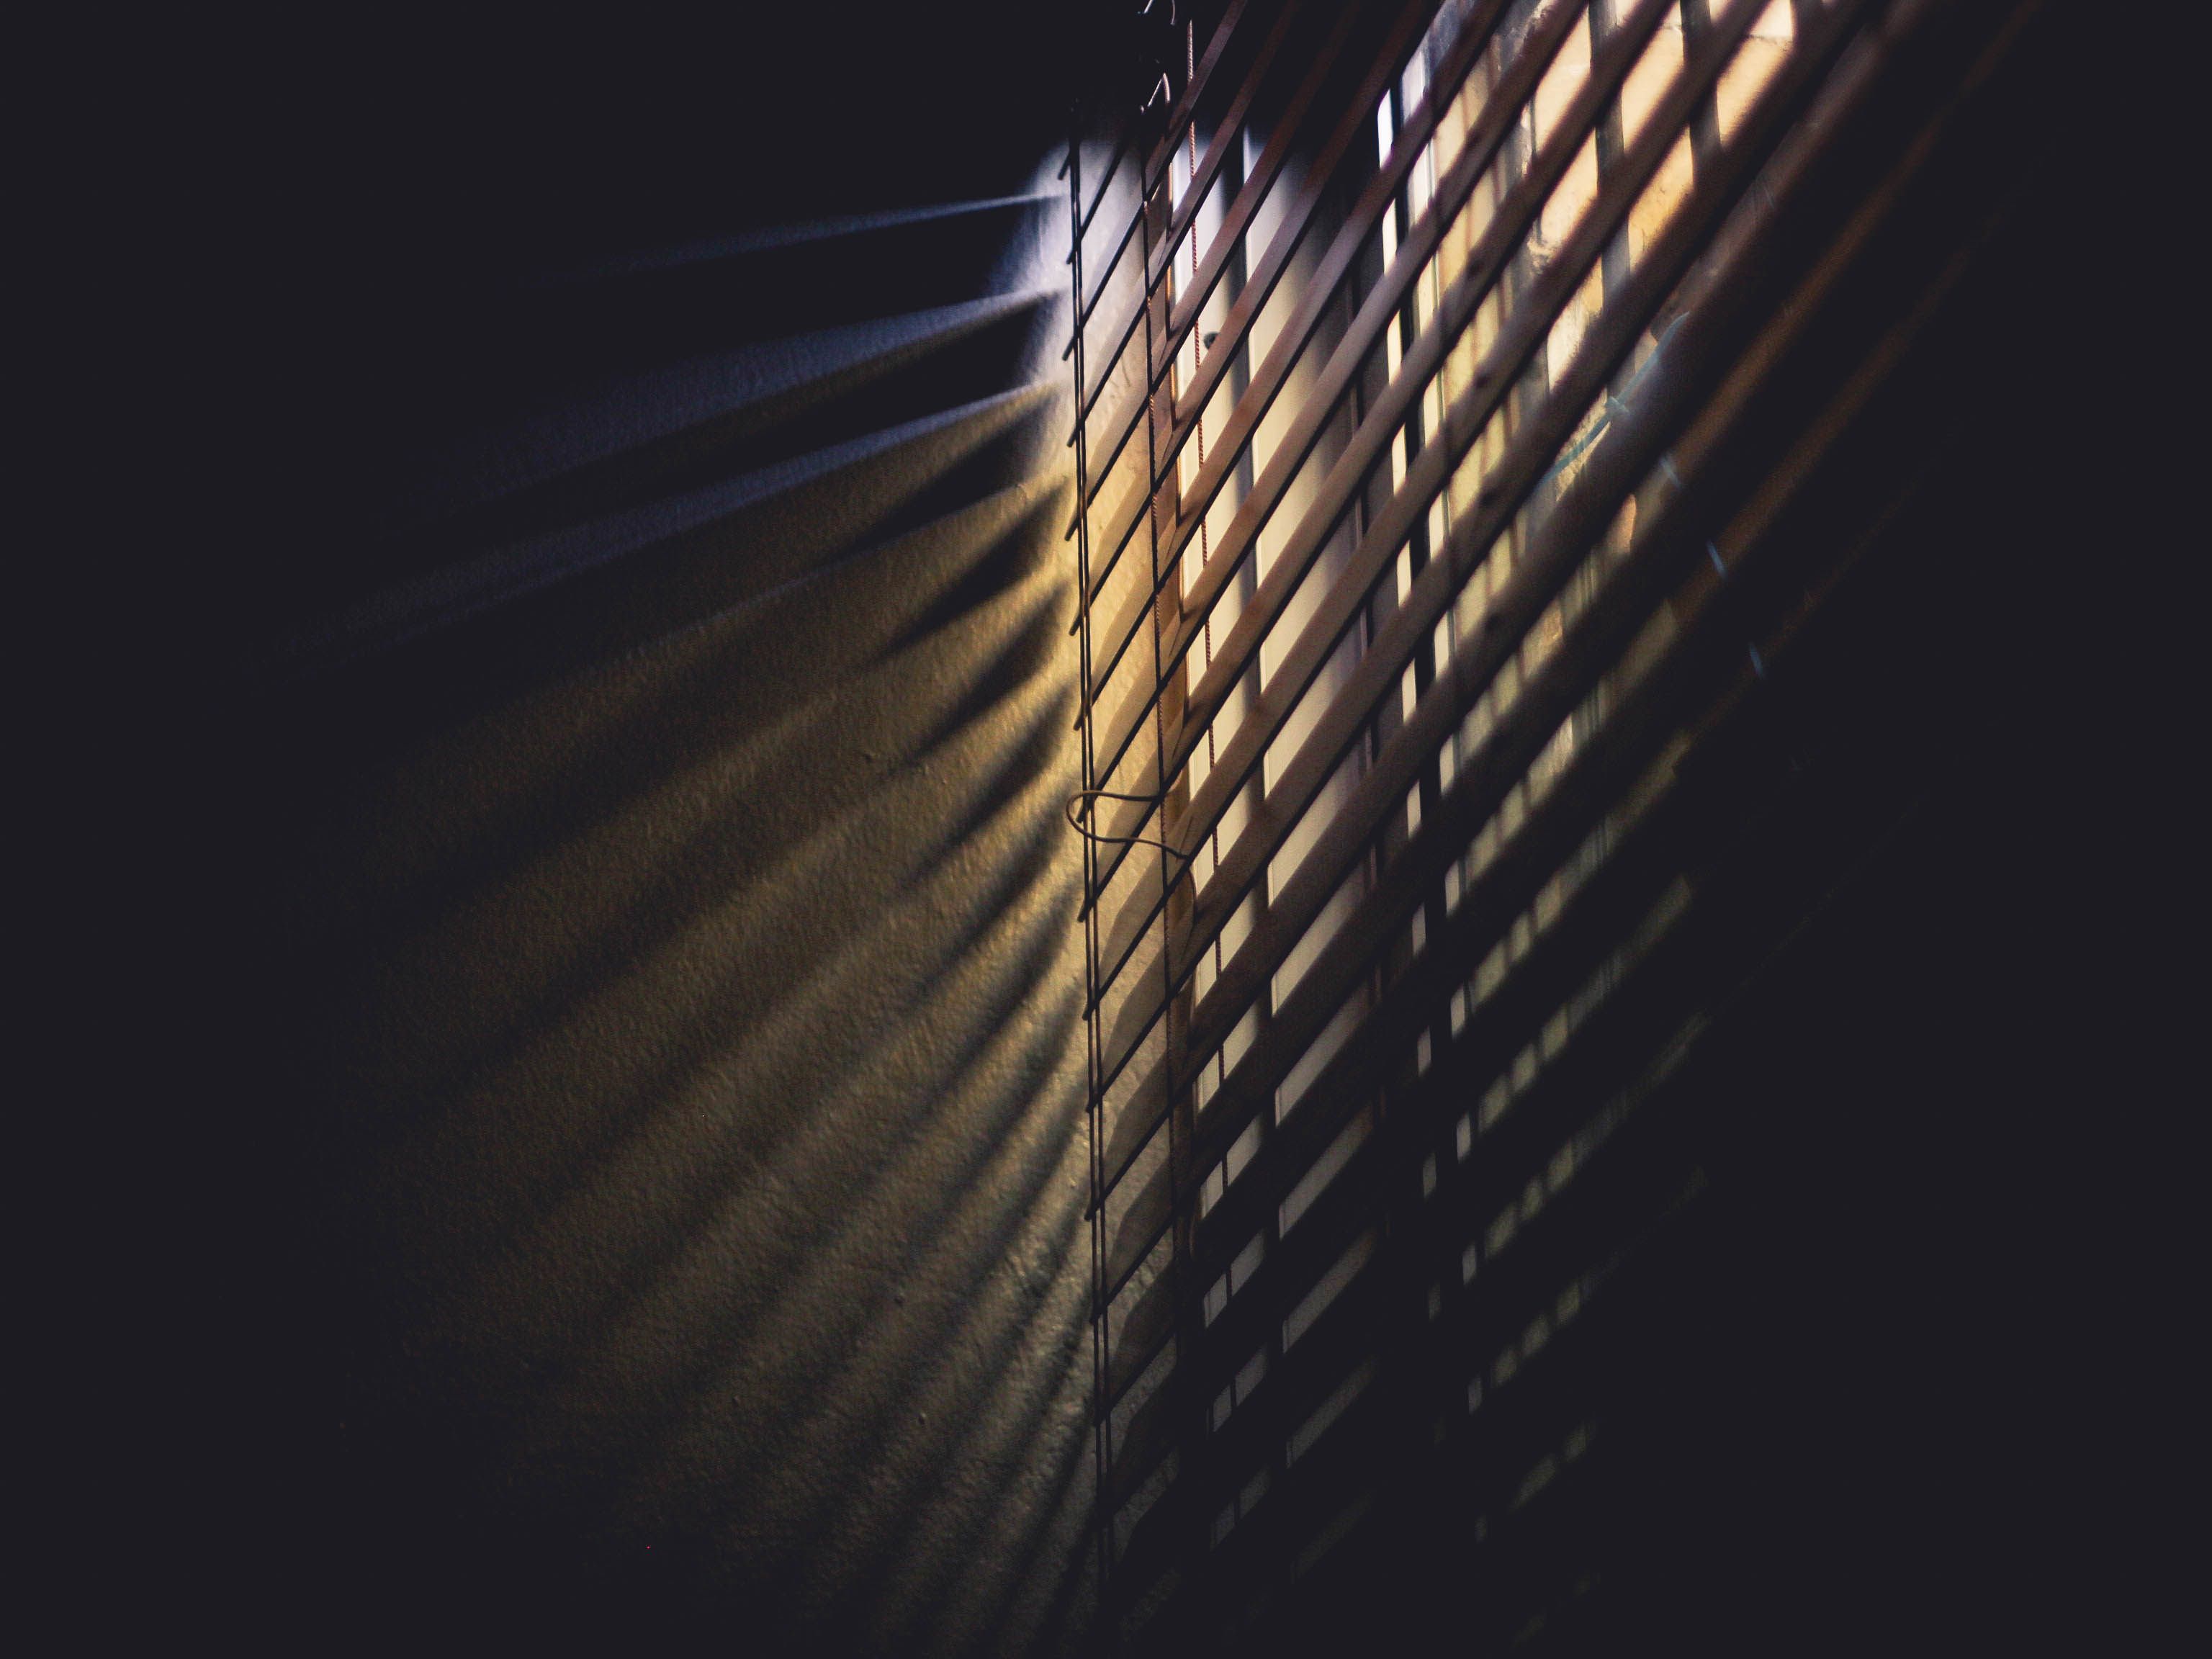 Low Light Photography Of Brown Window Blinds Free Stock